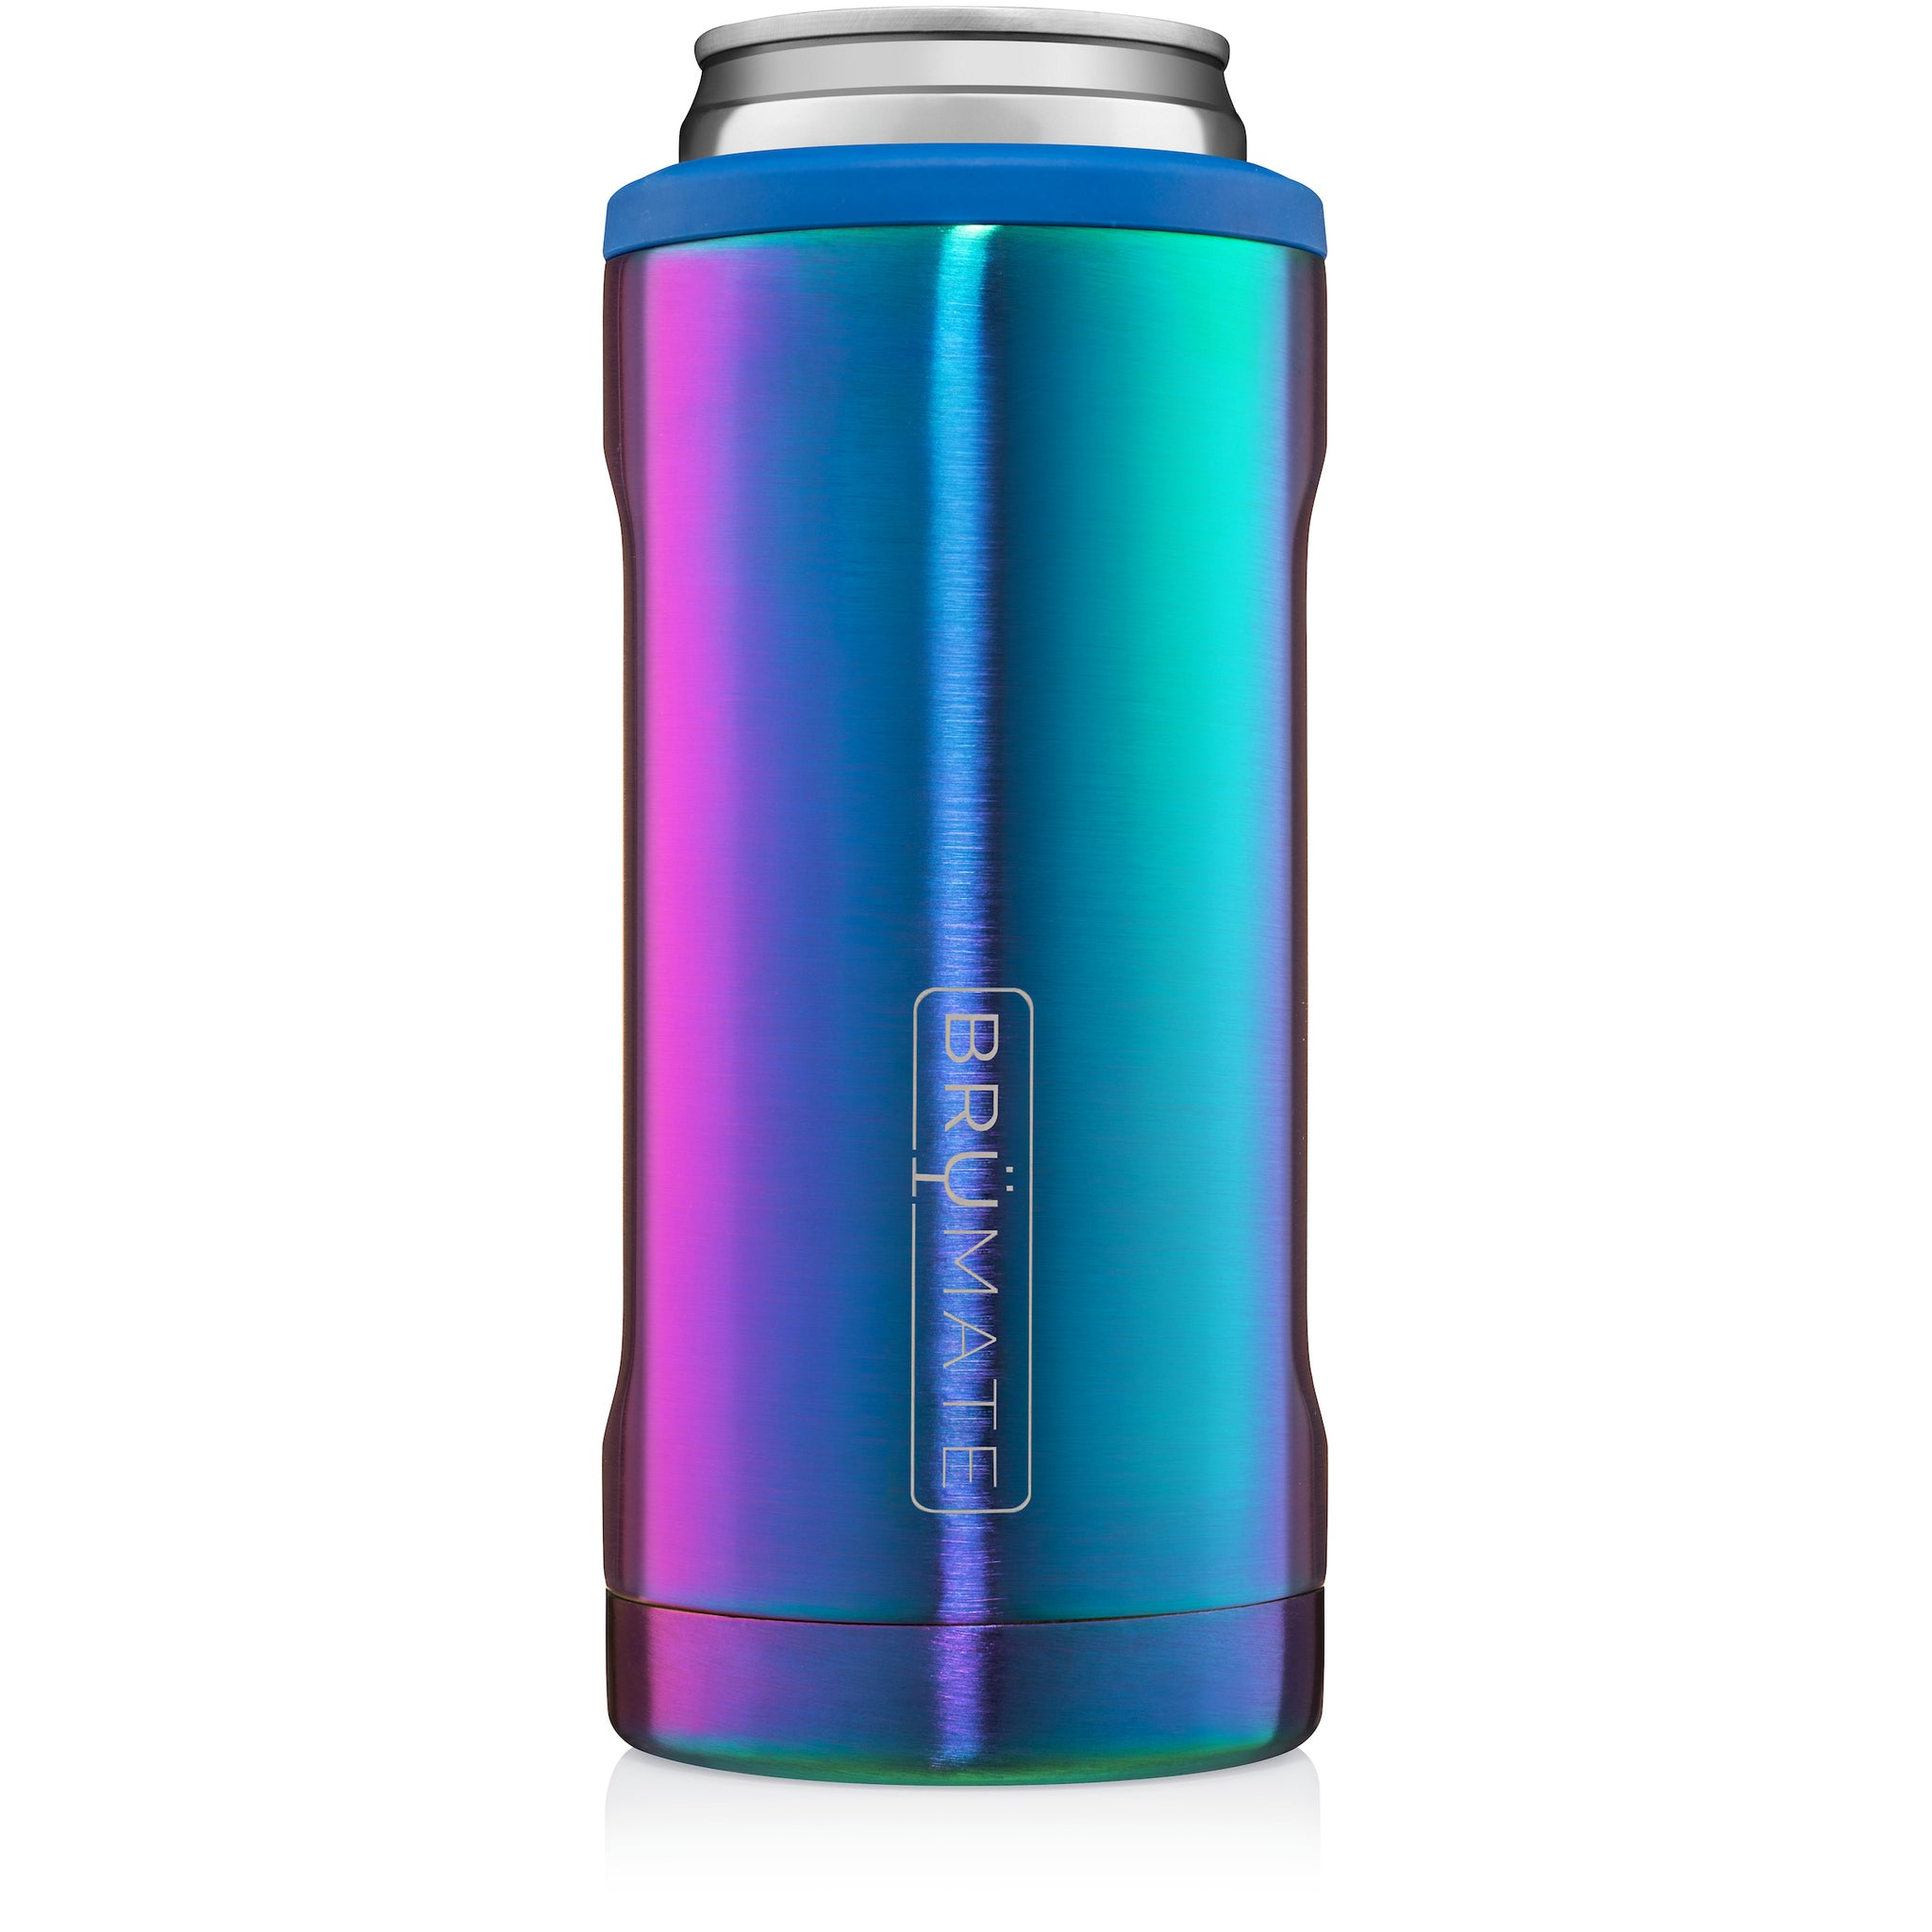 (PRE-ORDER, SHIPS 07/12) Hopsulator Slim | Rainbow Titanium (12oz slim cans) (LIMITED EDITION)